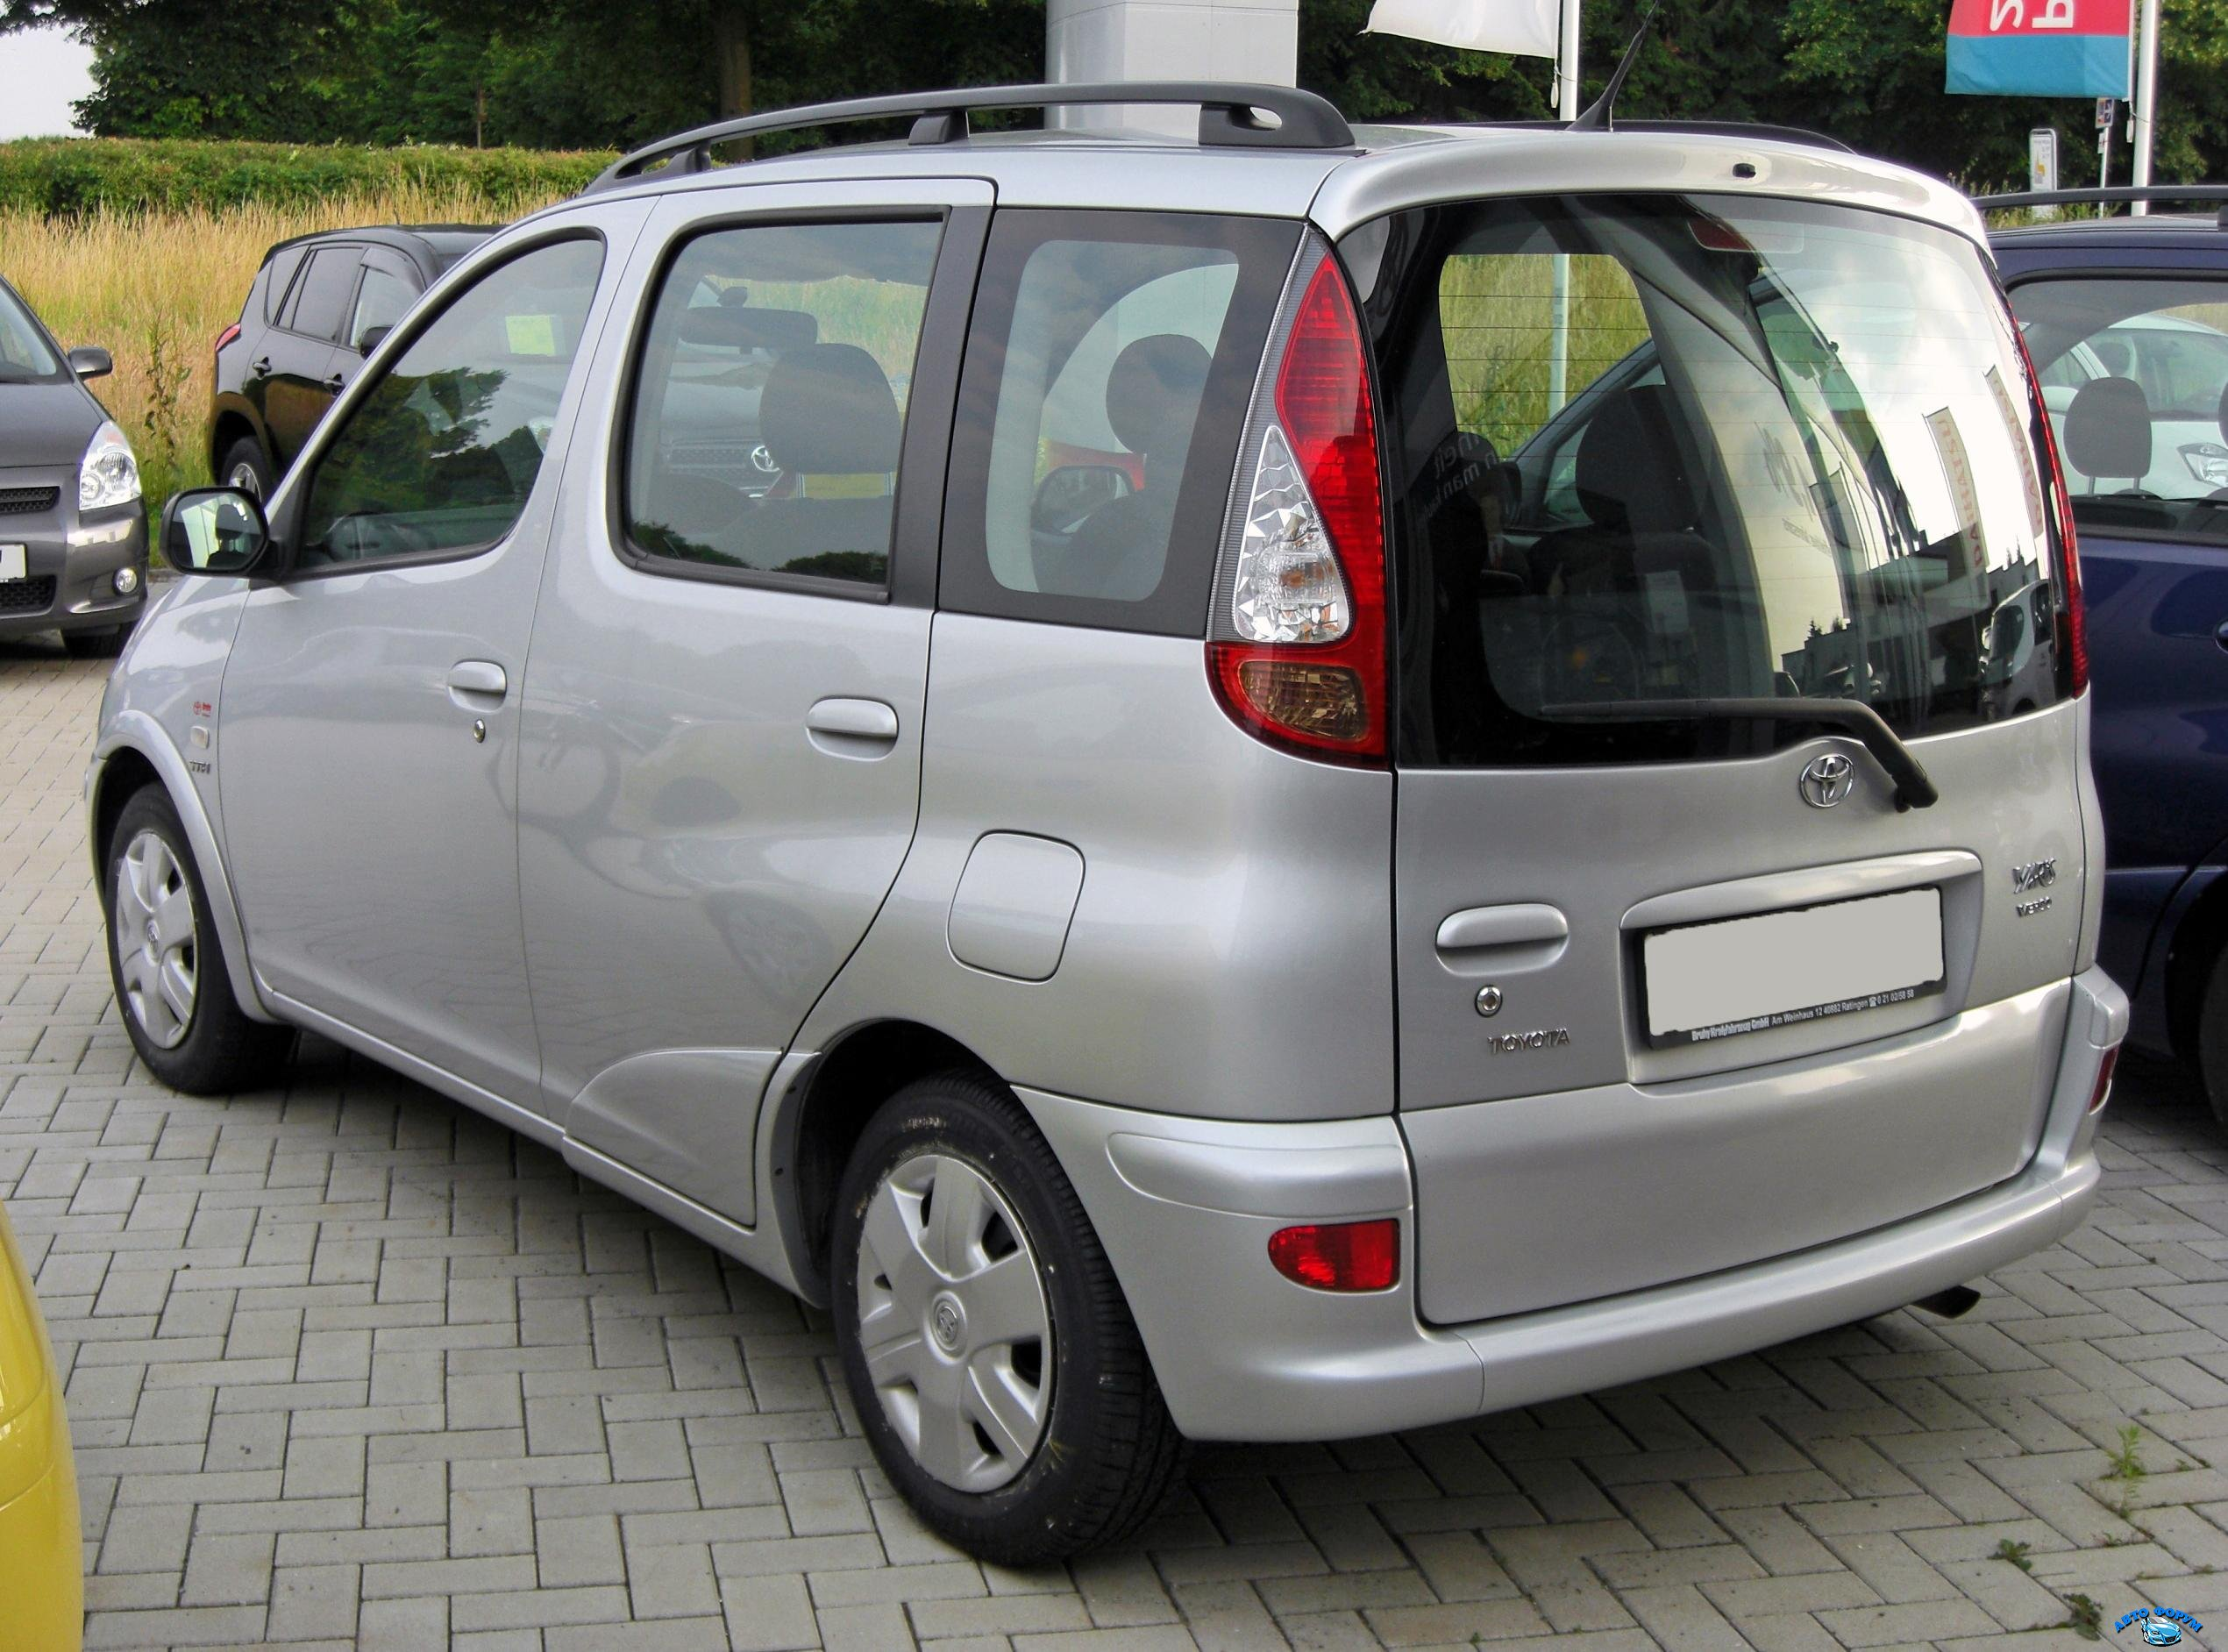 Toyota_Yaris_Verso_Facelift_20090621_rear1.JPG